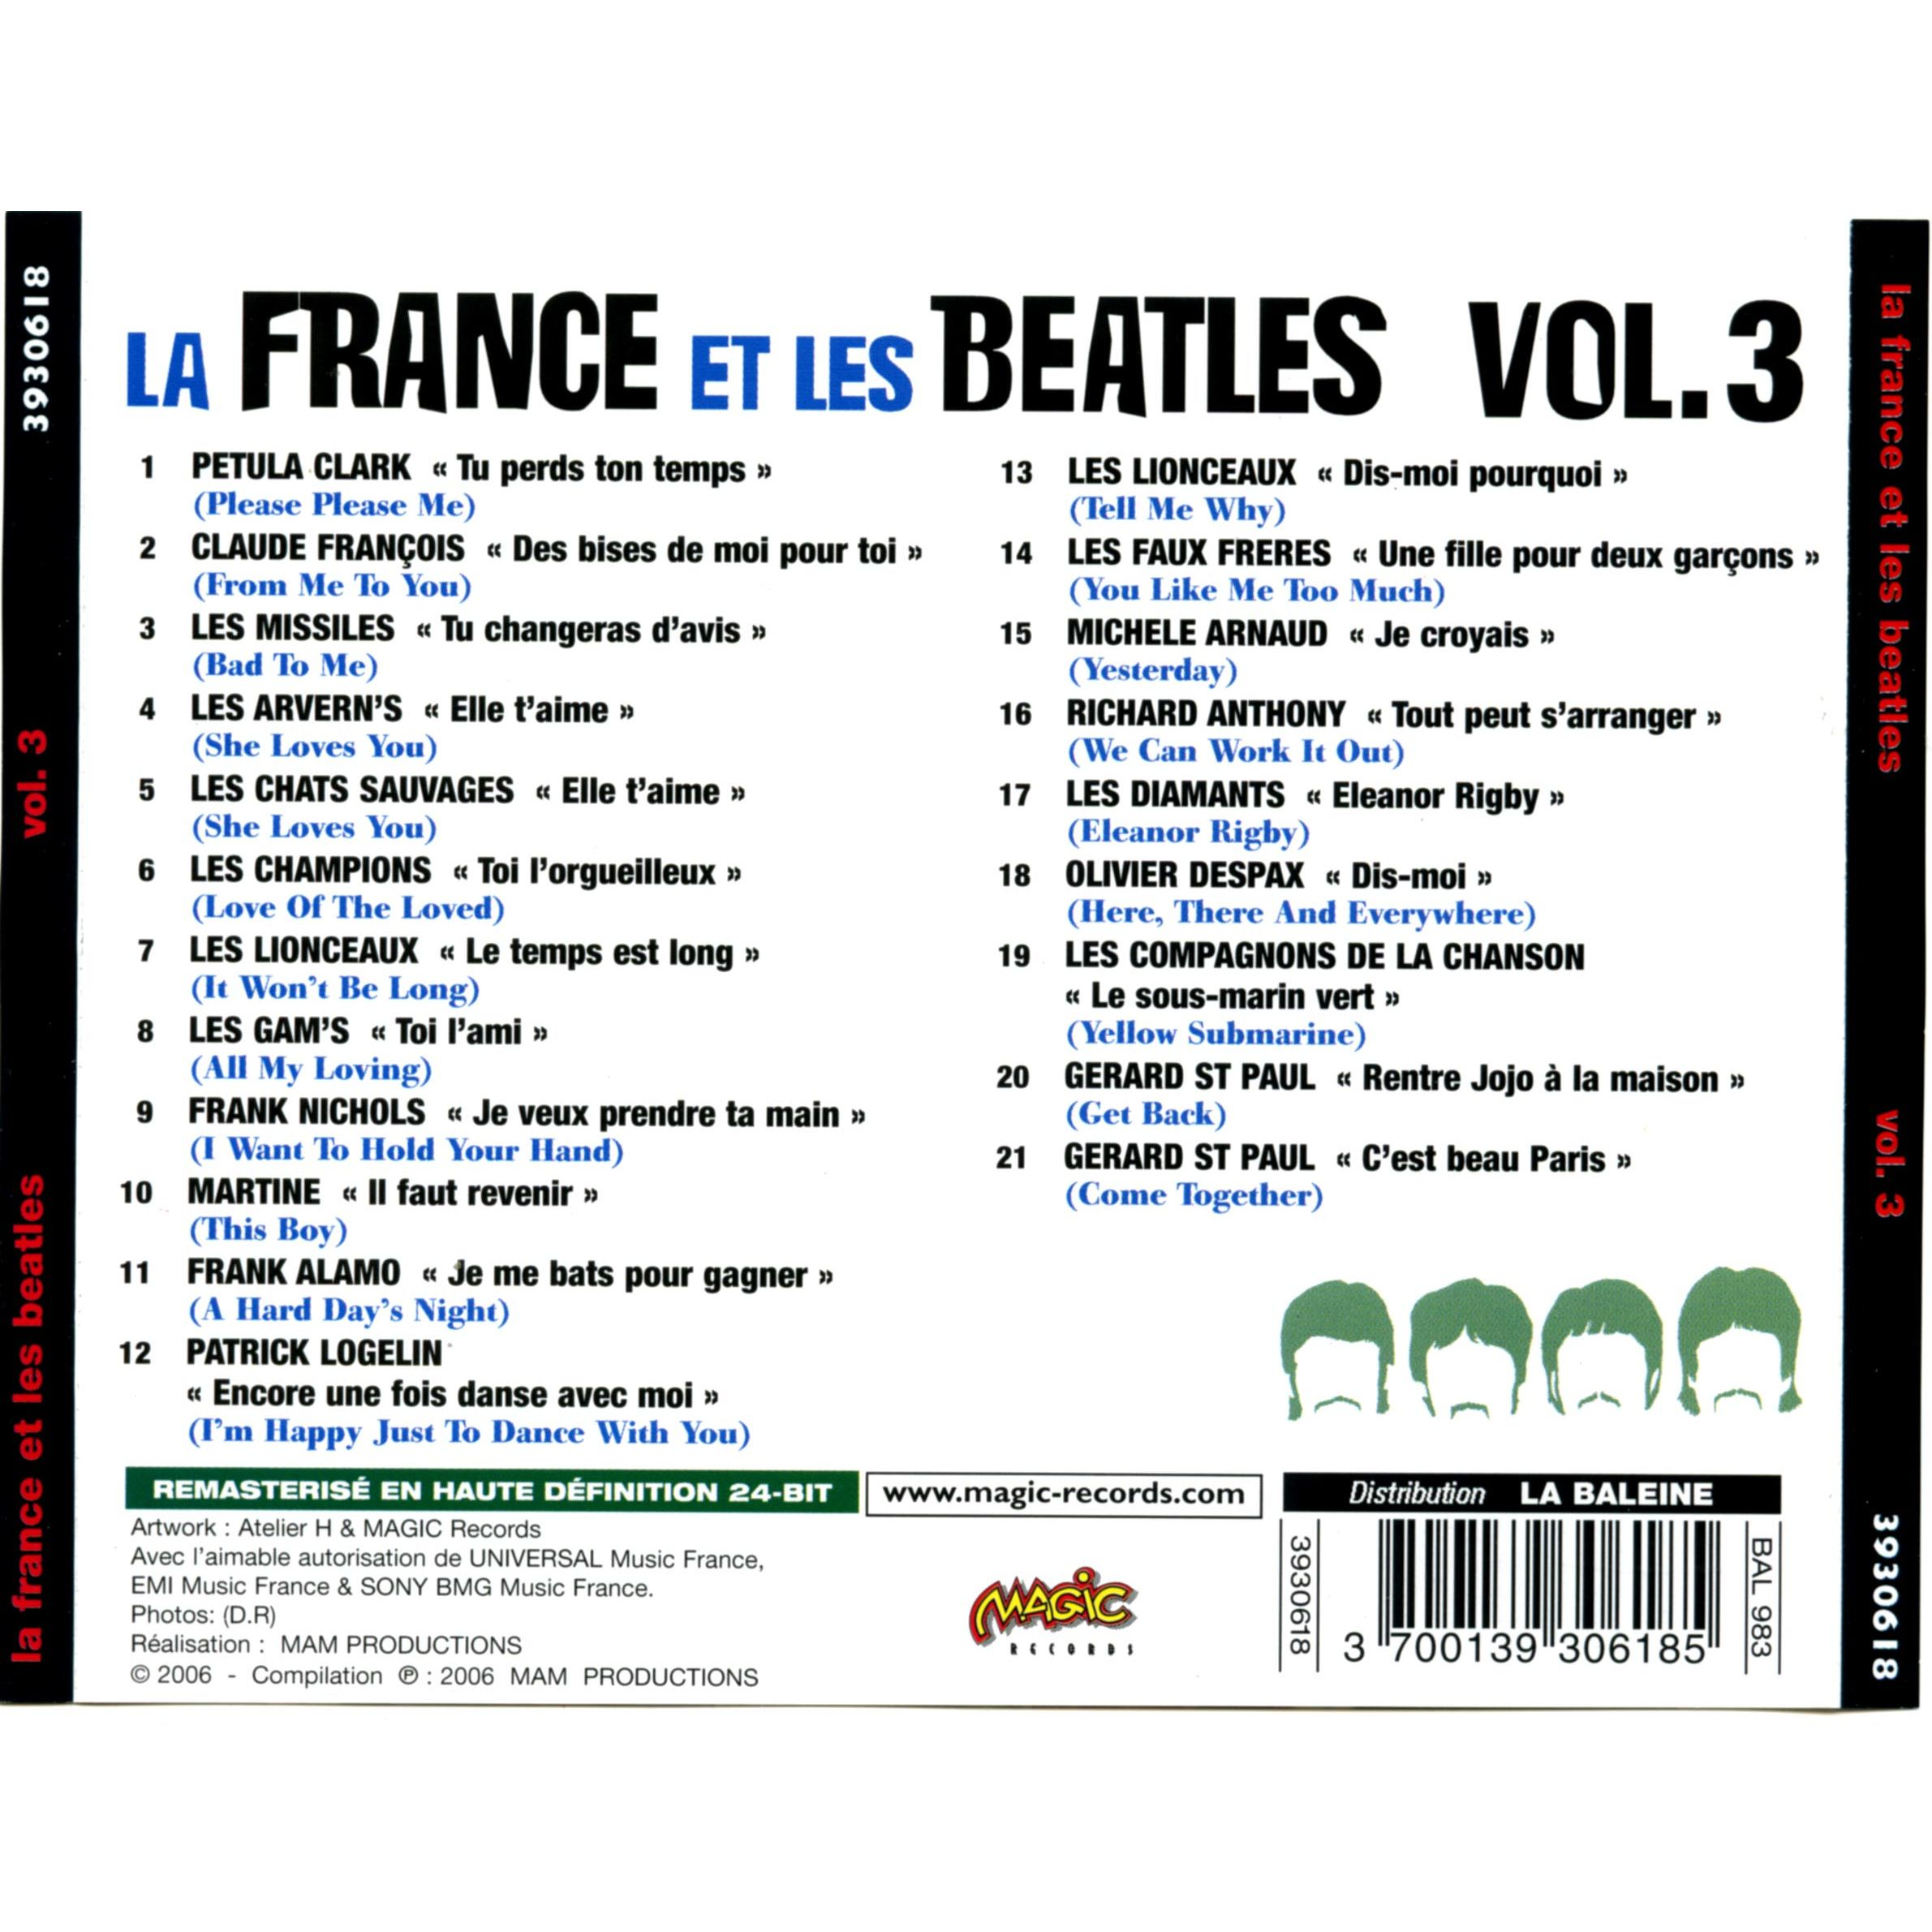 La-France-Et-Les-Beatles-Vol-3-2-picture